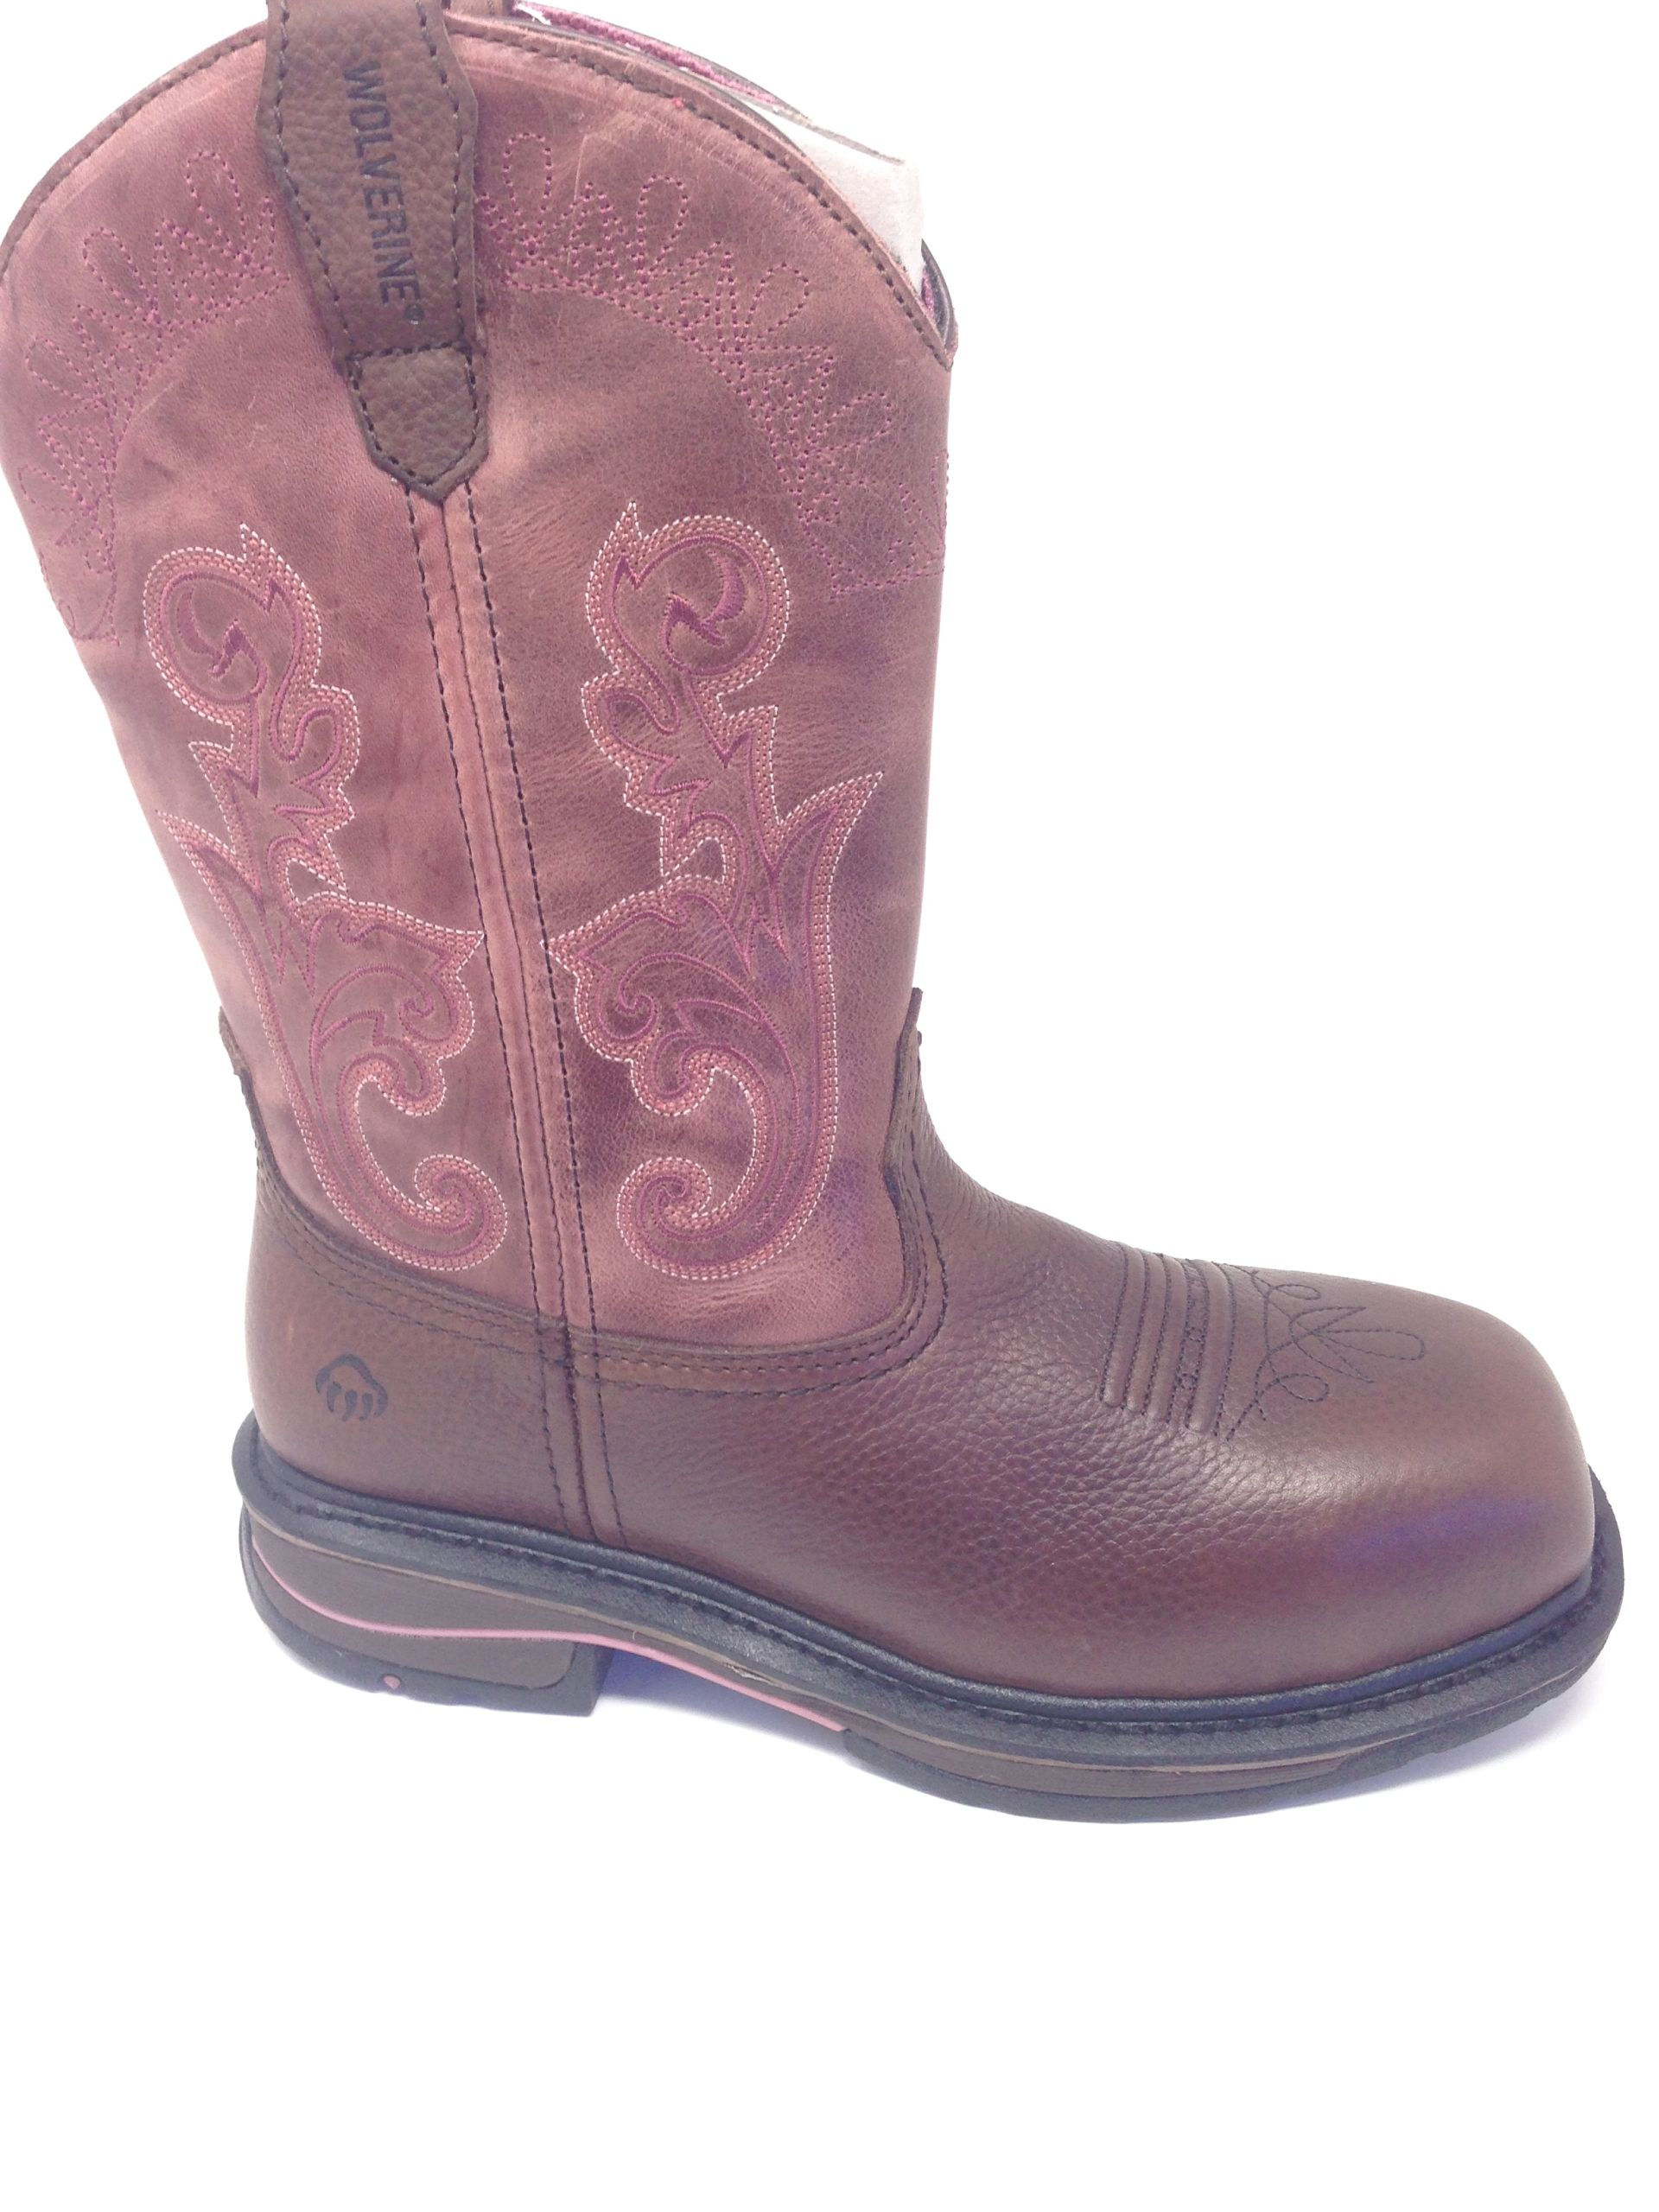 Wolverine Kacey Women's Boots 10 Inch Composite Toe Wellington W10527 by